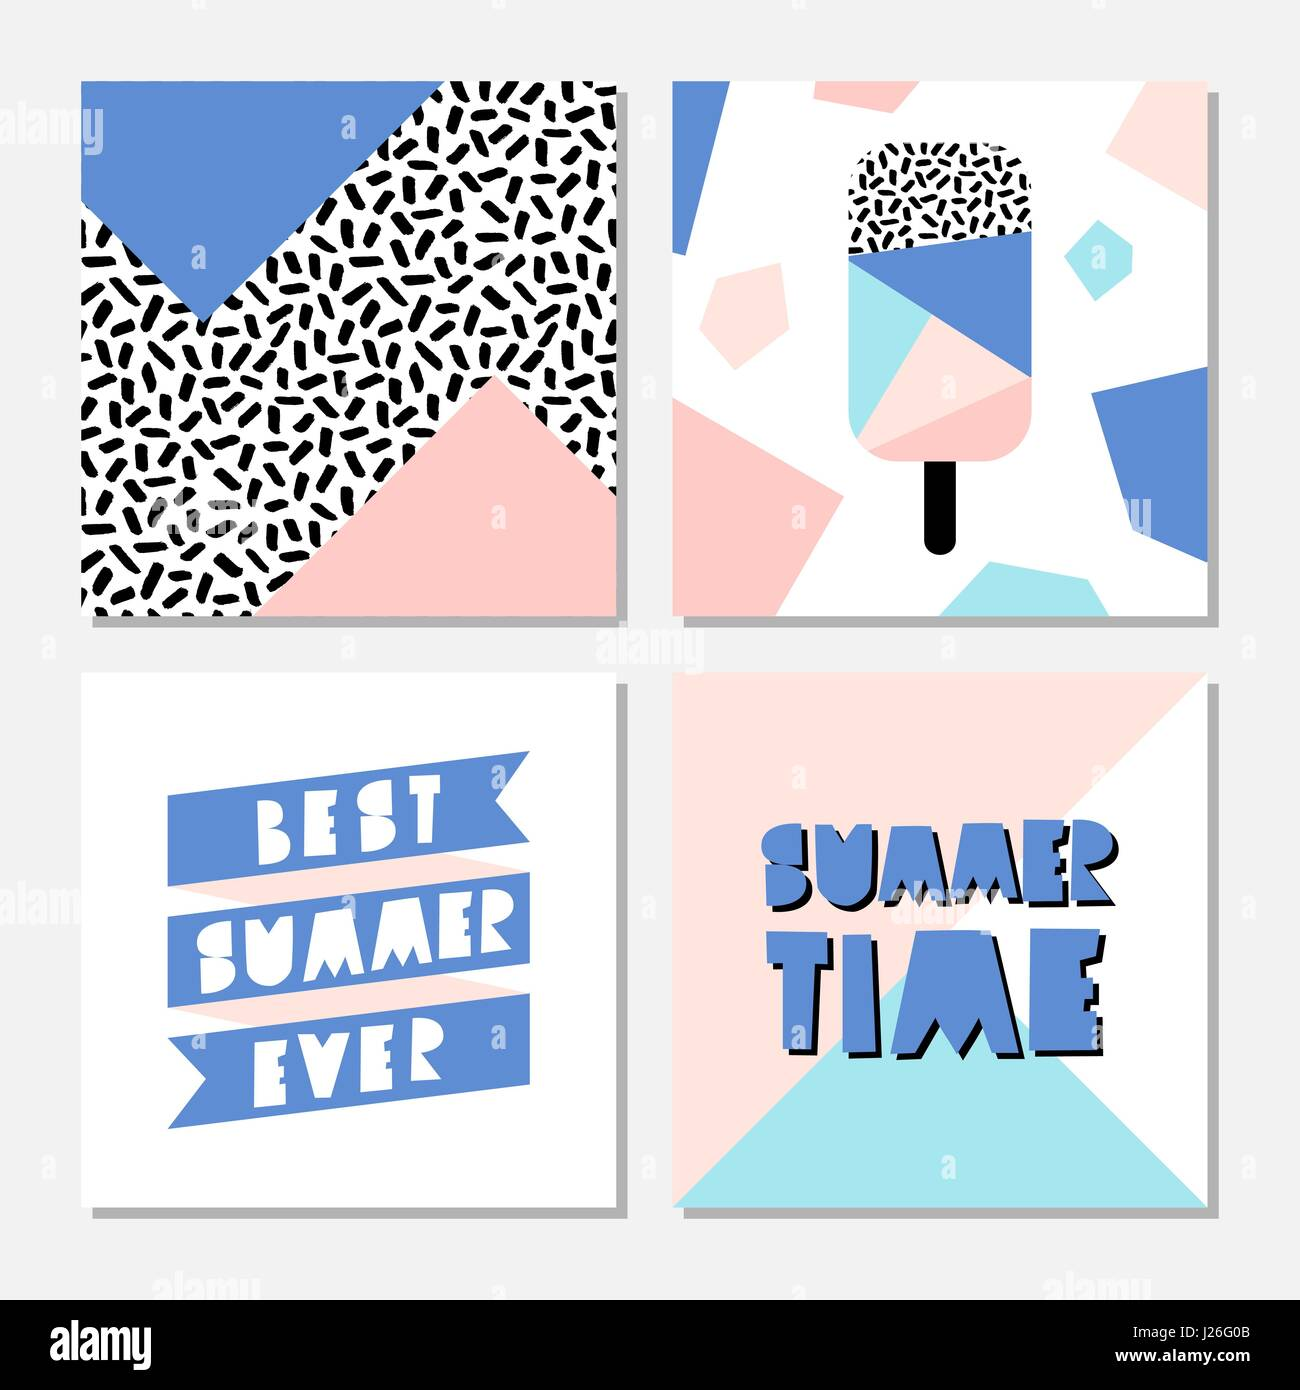 Retro design summer cards with pastel colored geometric shapes